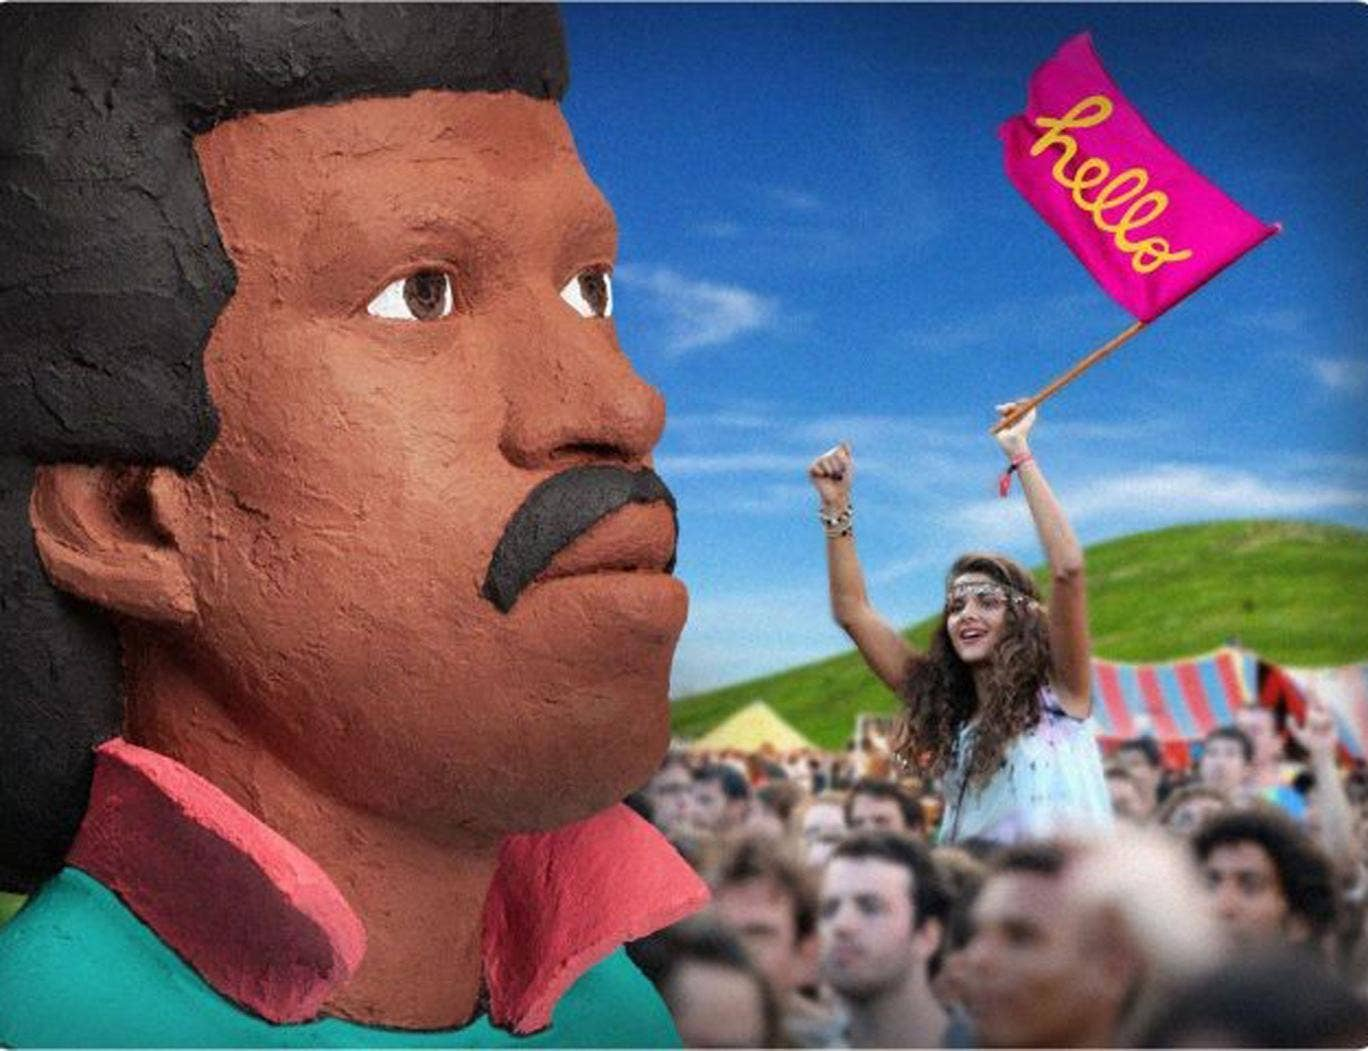 Bestival's giant inflatable Lionel Richie head